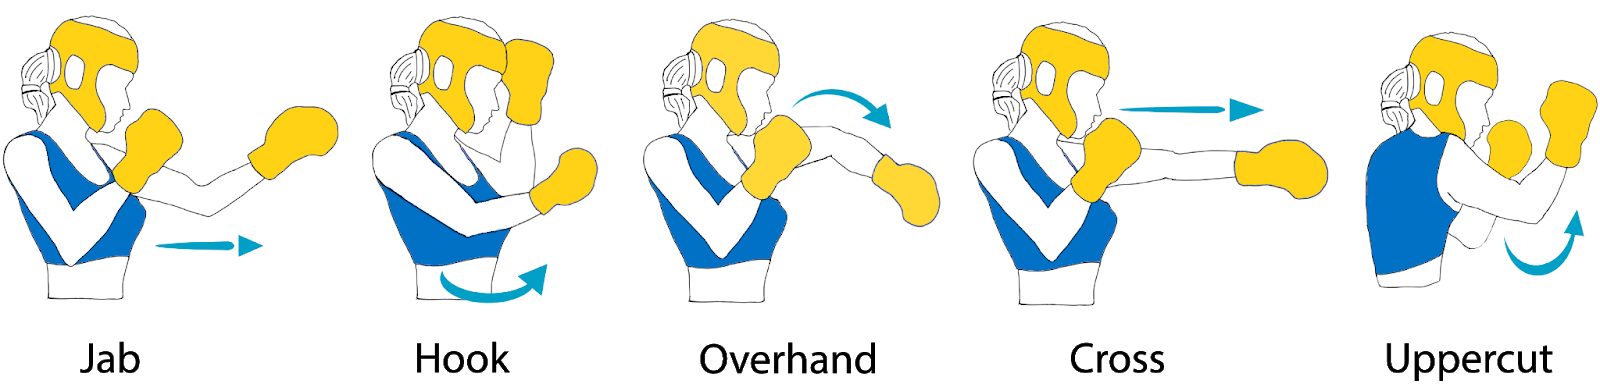 boxing gestures